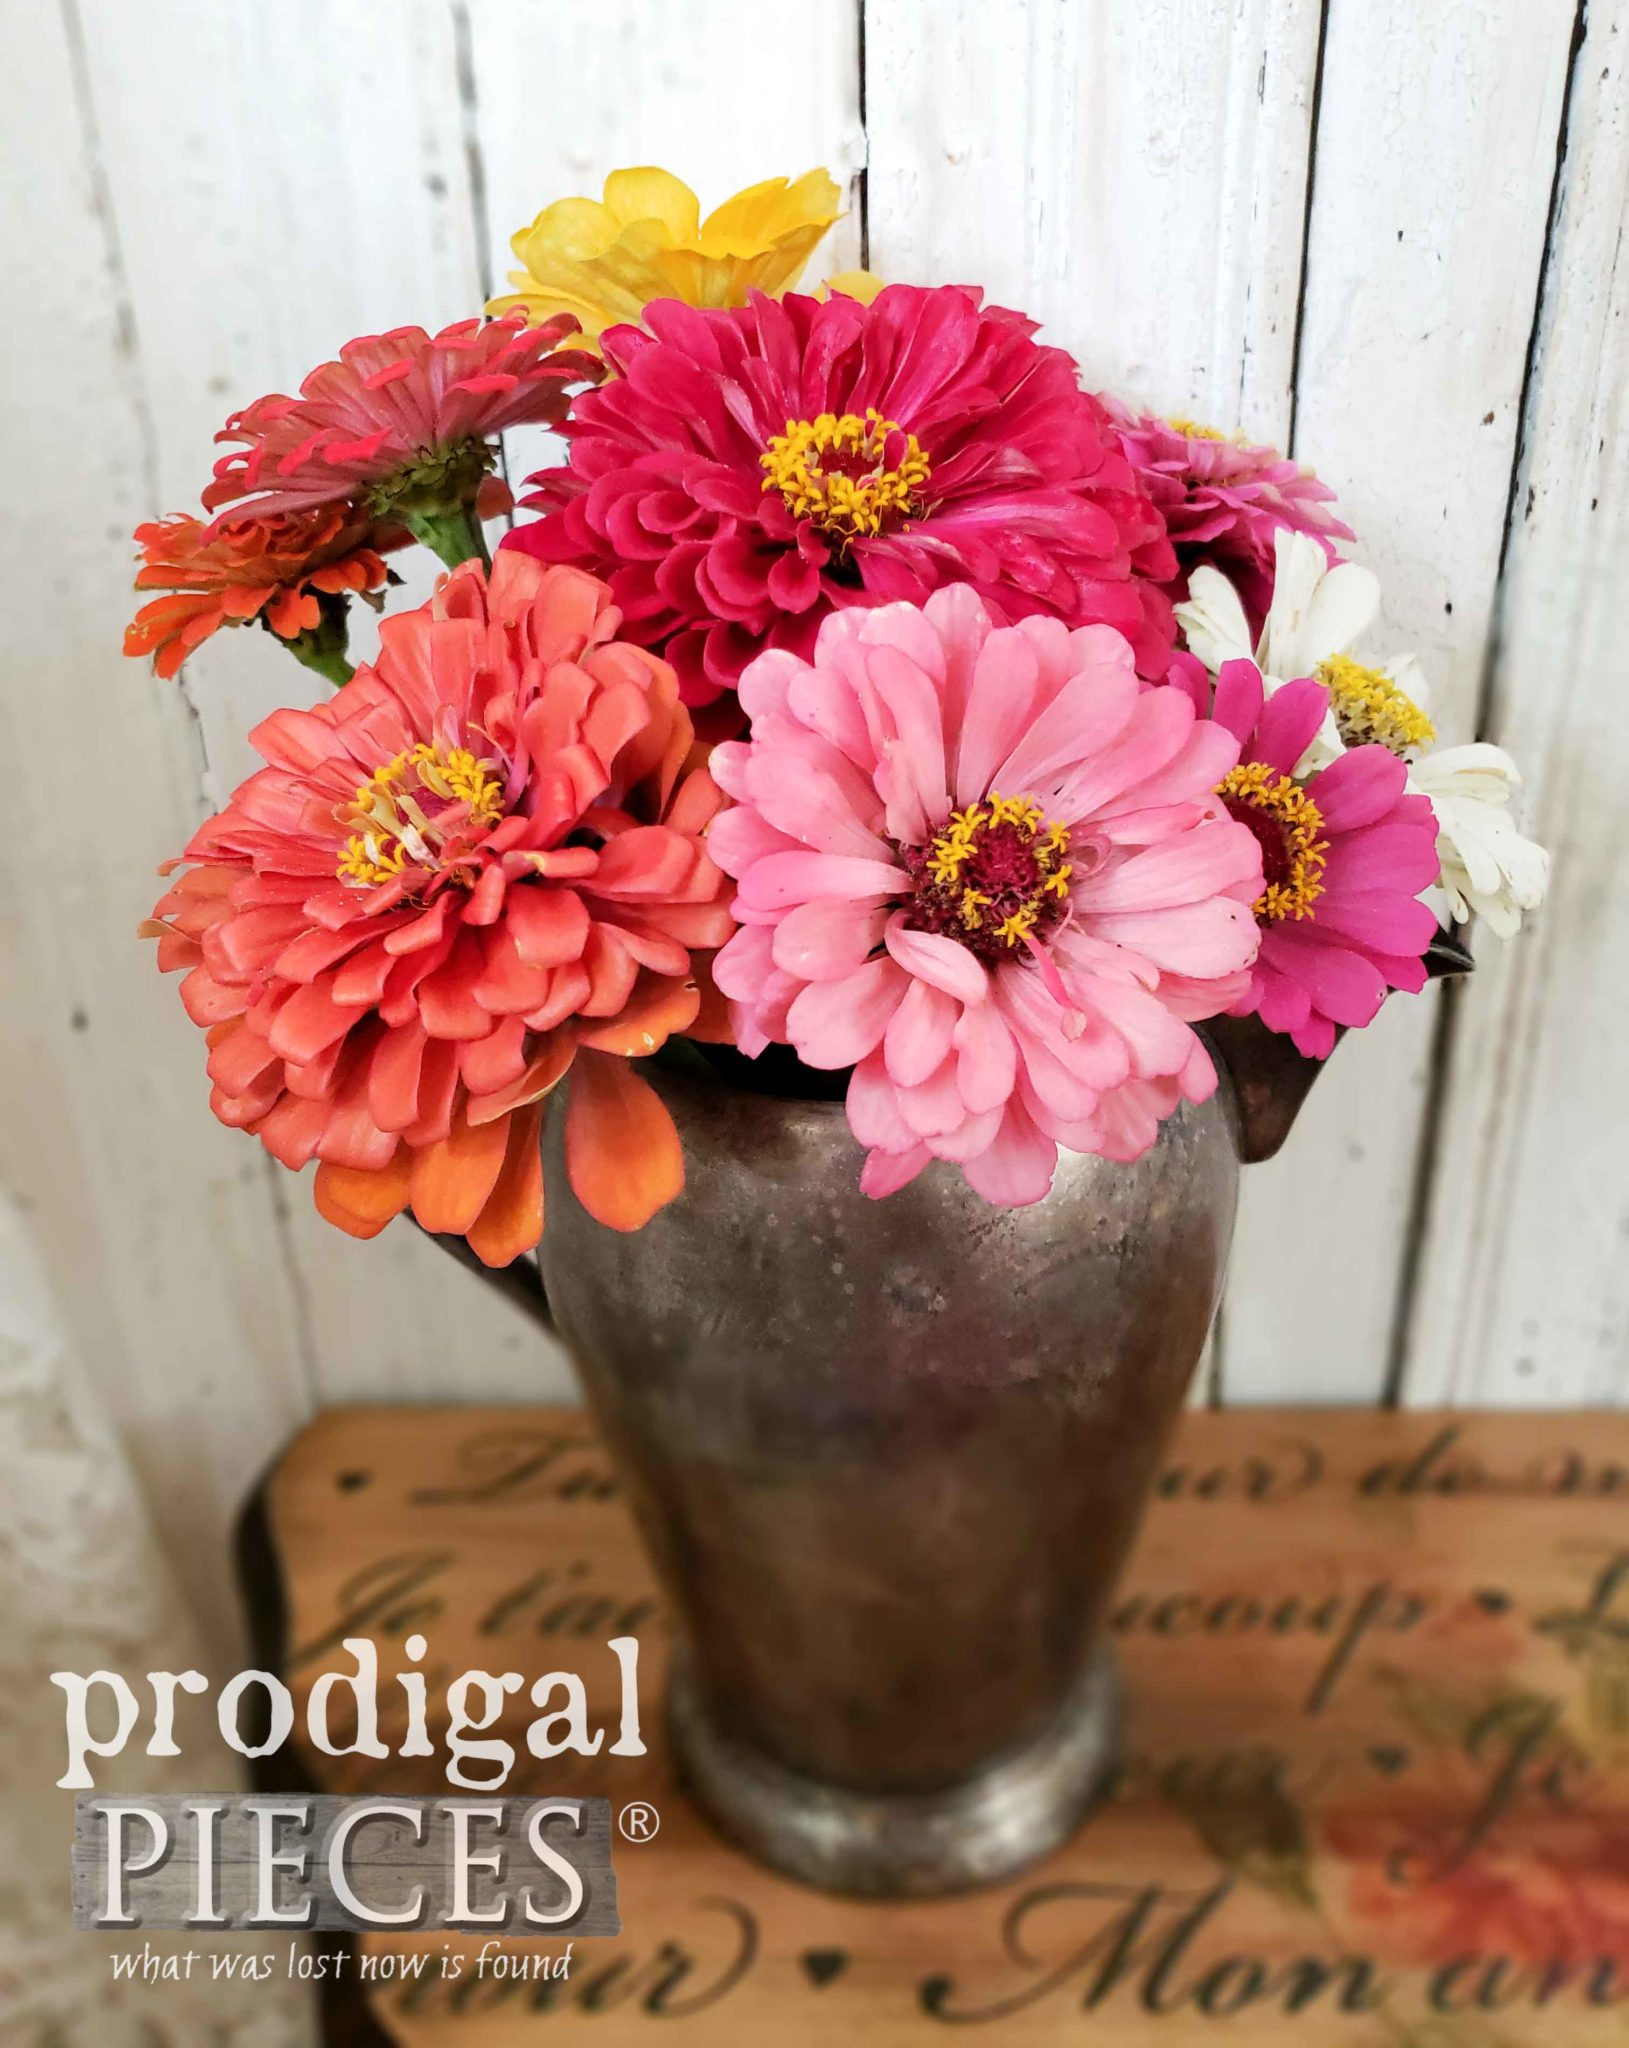 Beautiful Vintage Pewter Pitcher Filled with Zinnias from the Garden of Larissa at Prodigal Pieces | prodigalpieces.com